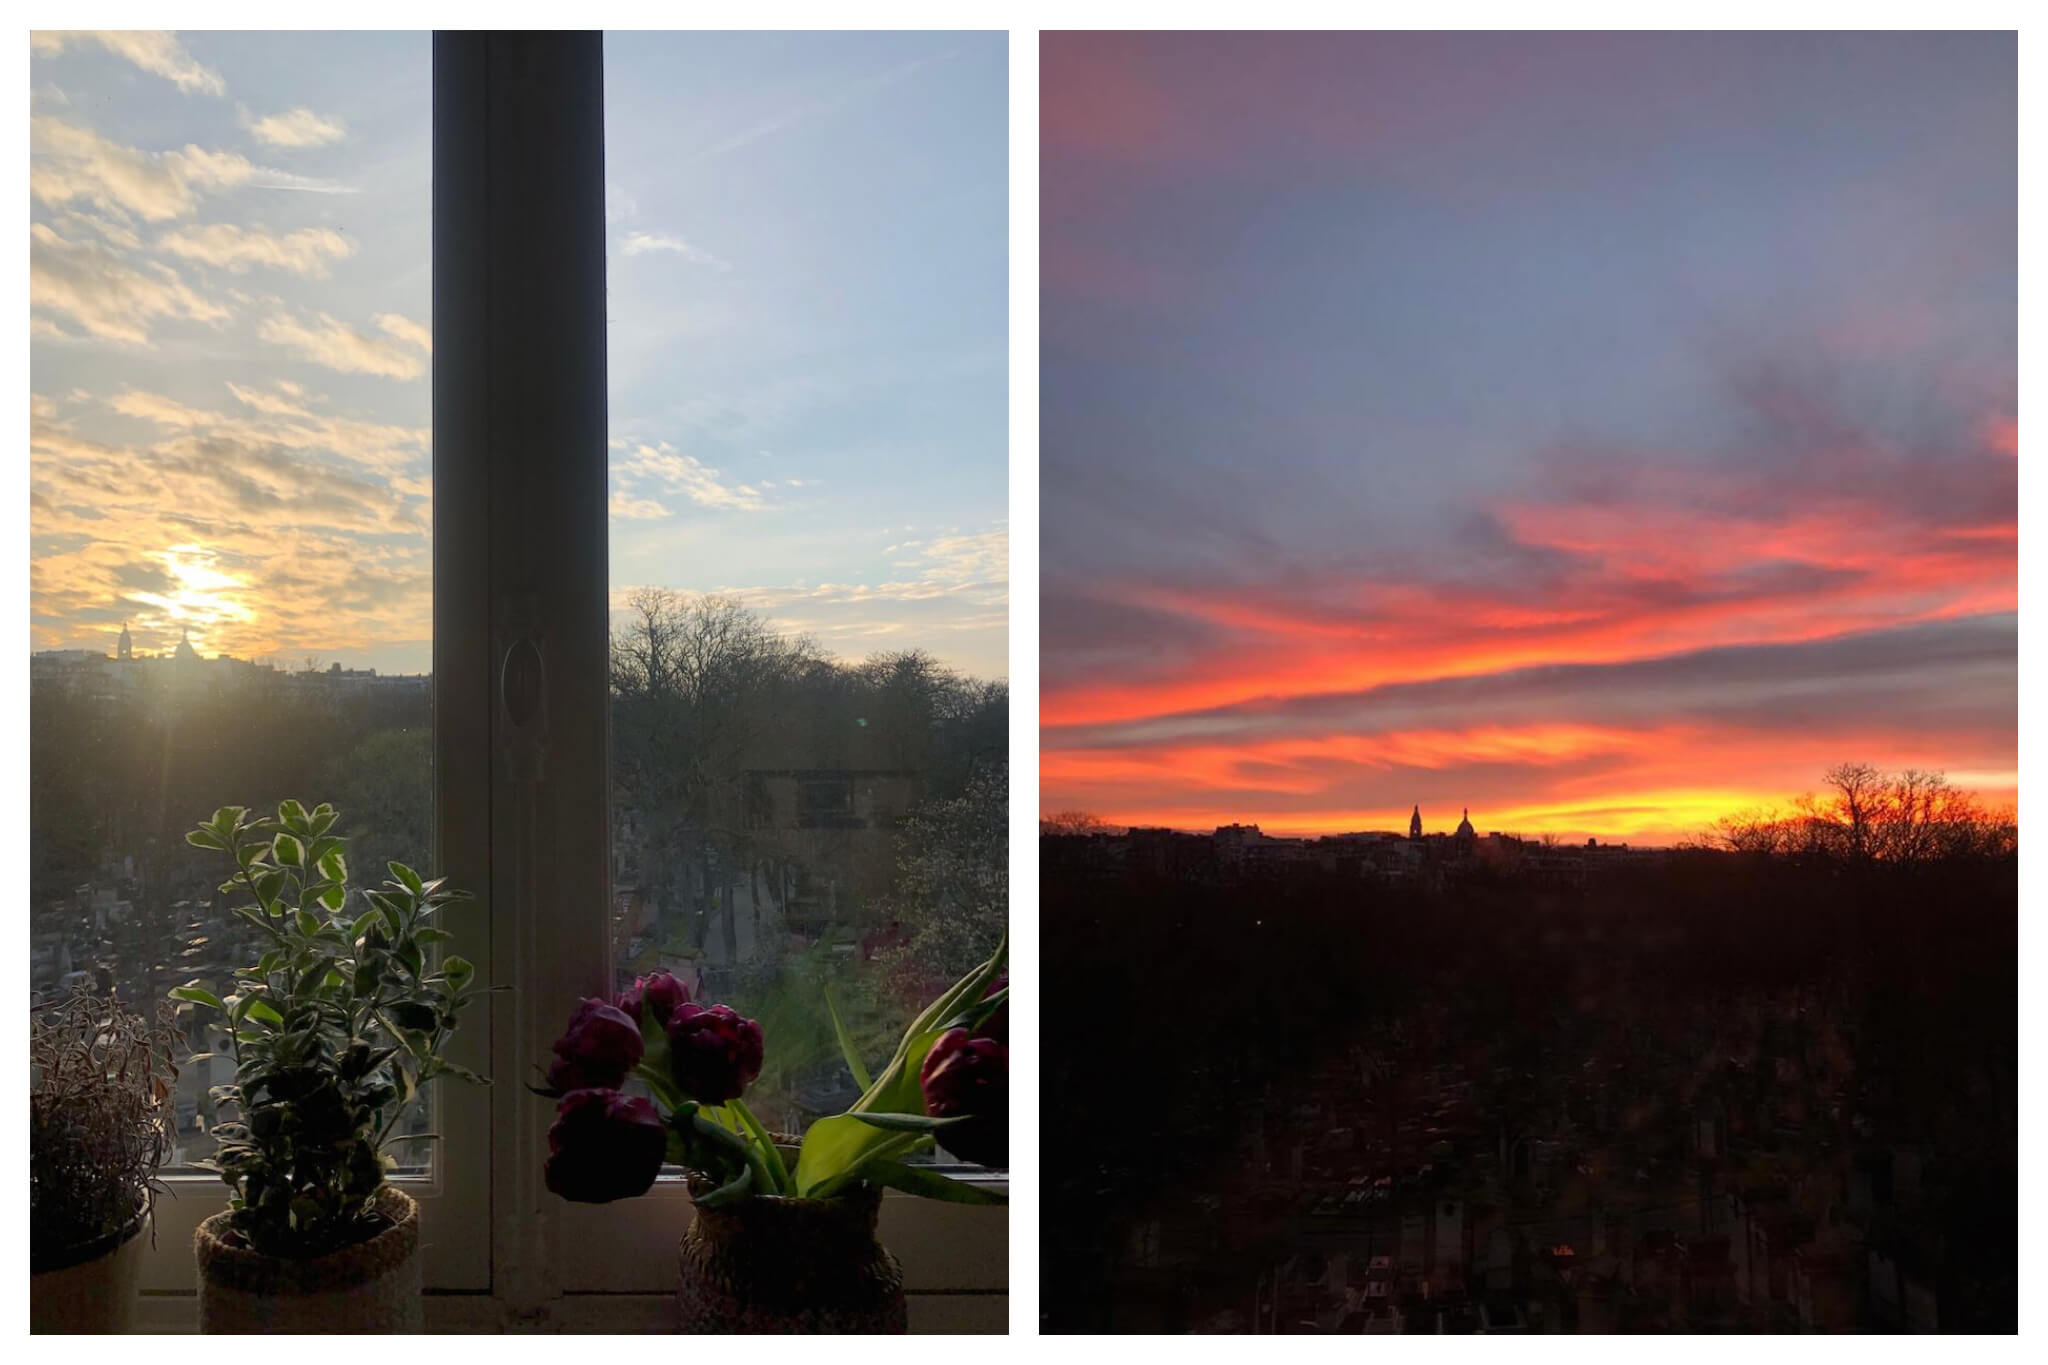 Left: Plants sit by a window in Miranda's Paris apartment as the sun begins to set for the evening. Right: A beautiful sunset  with Sacre Coeur in the background can be seen from Miranda's tiny studio apartment in Paris.